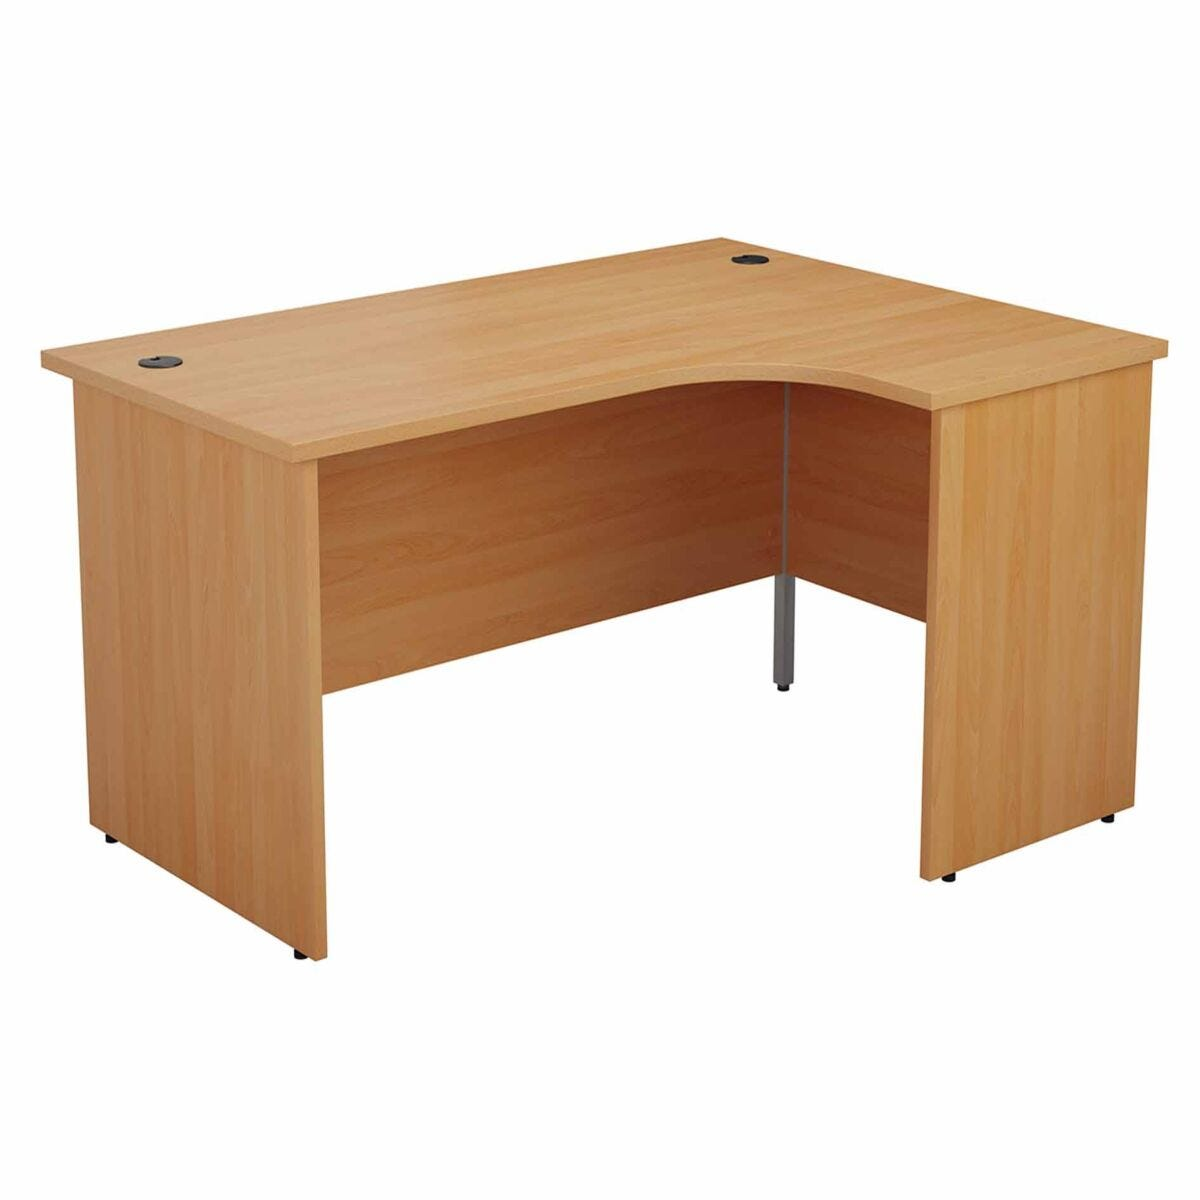 TC Office Right Hand Crescent Desk with Panel End Legs and Pedestal 1800 x 1200mm